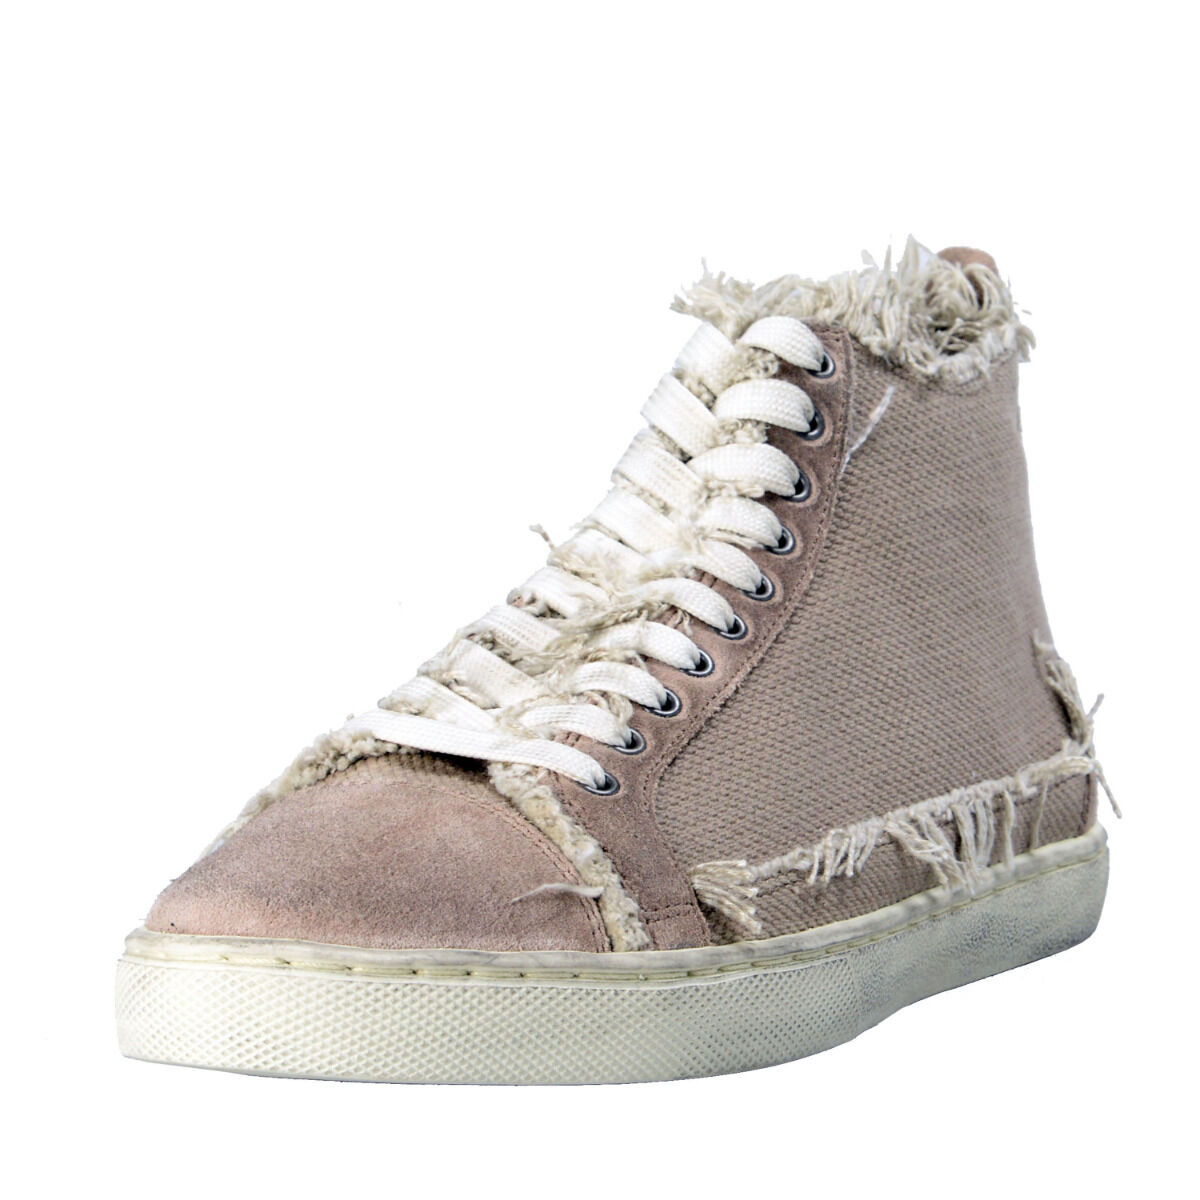 Dolce & Gabbana Women's Canvas Leather Fashion Sneakers Shoes 8.5 9